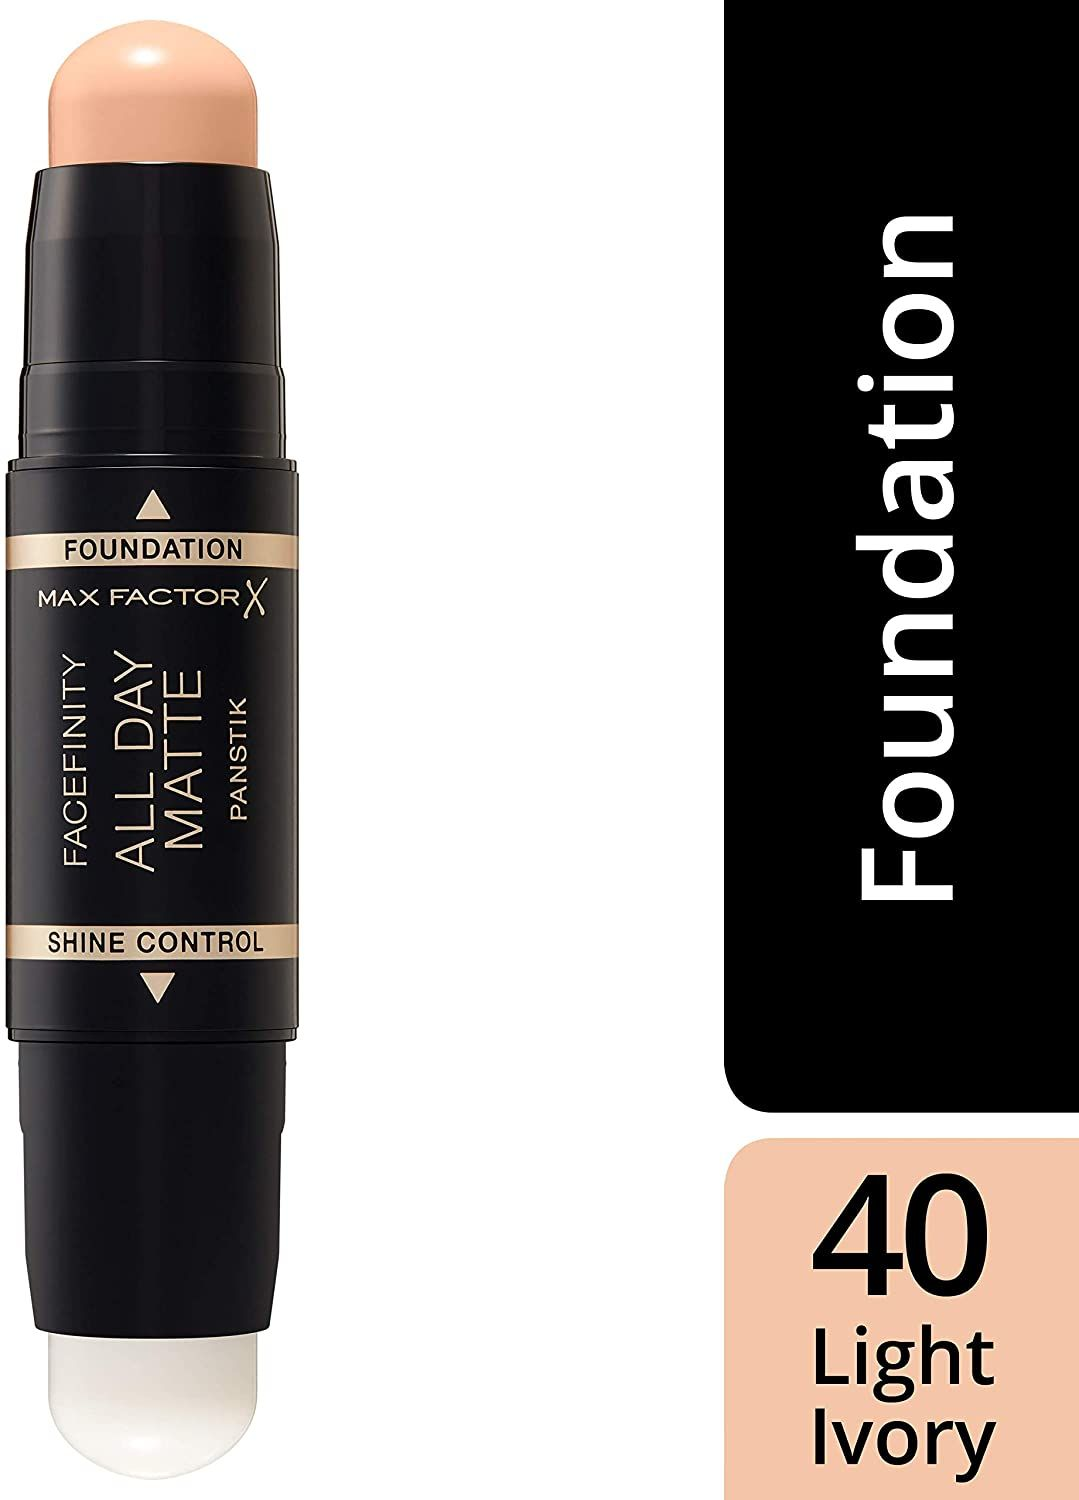 3x Max Factor Facefinity All Day Matte 2in1 PanStik Foundation 40 Light Ivory